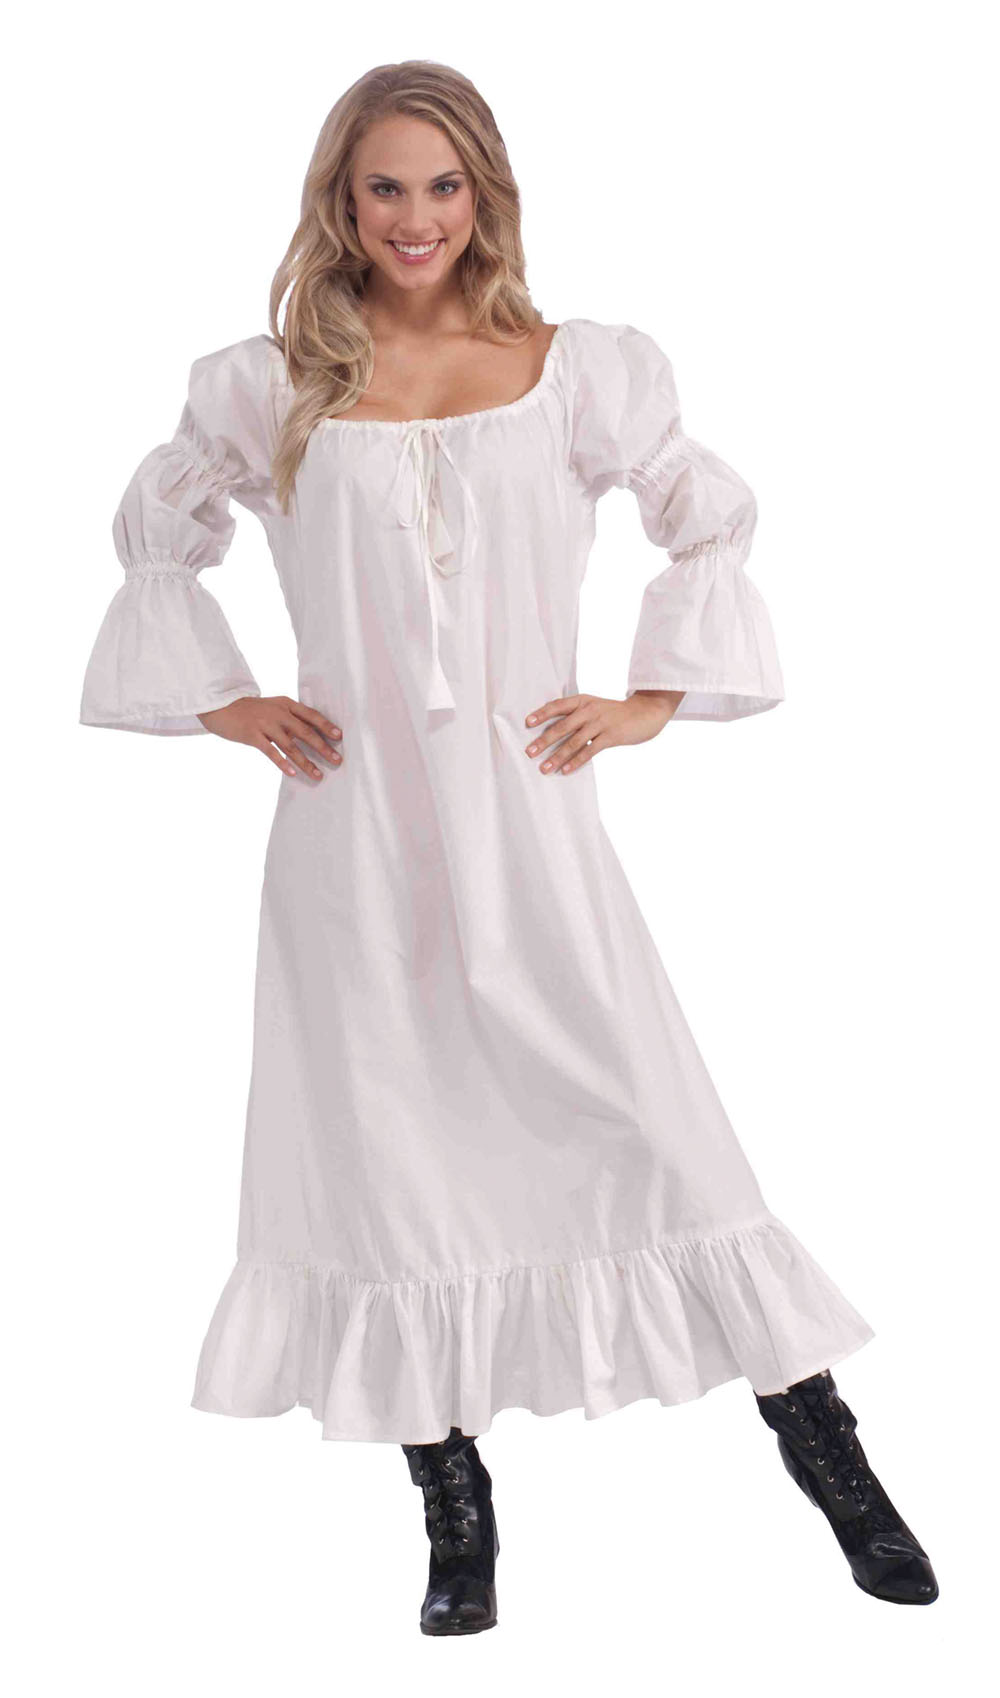 Ladies White Medieval Chemise Undergown Fancy Dress Costume Nightdress UK 10-14